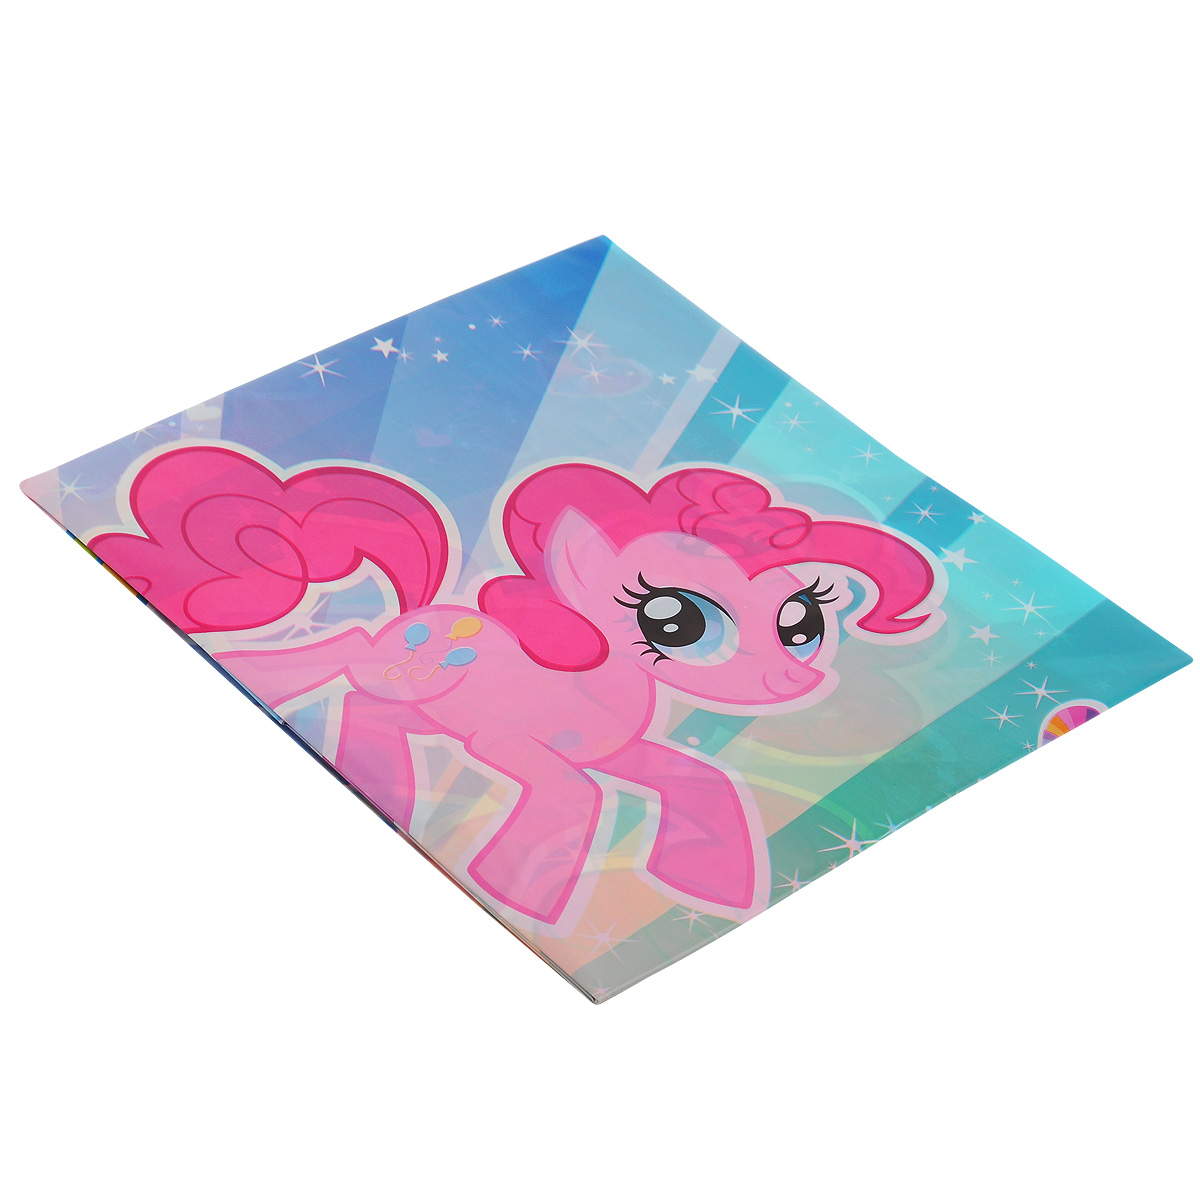 Скатерть My Little Pony, 140 см х 180 см штора barito quelle my home 521956 в ш ок 245 140 см